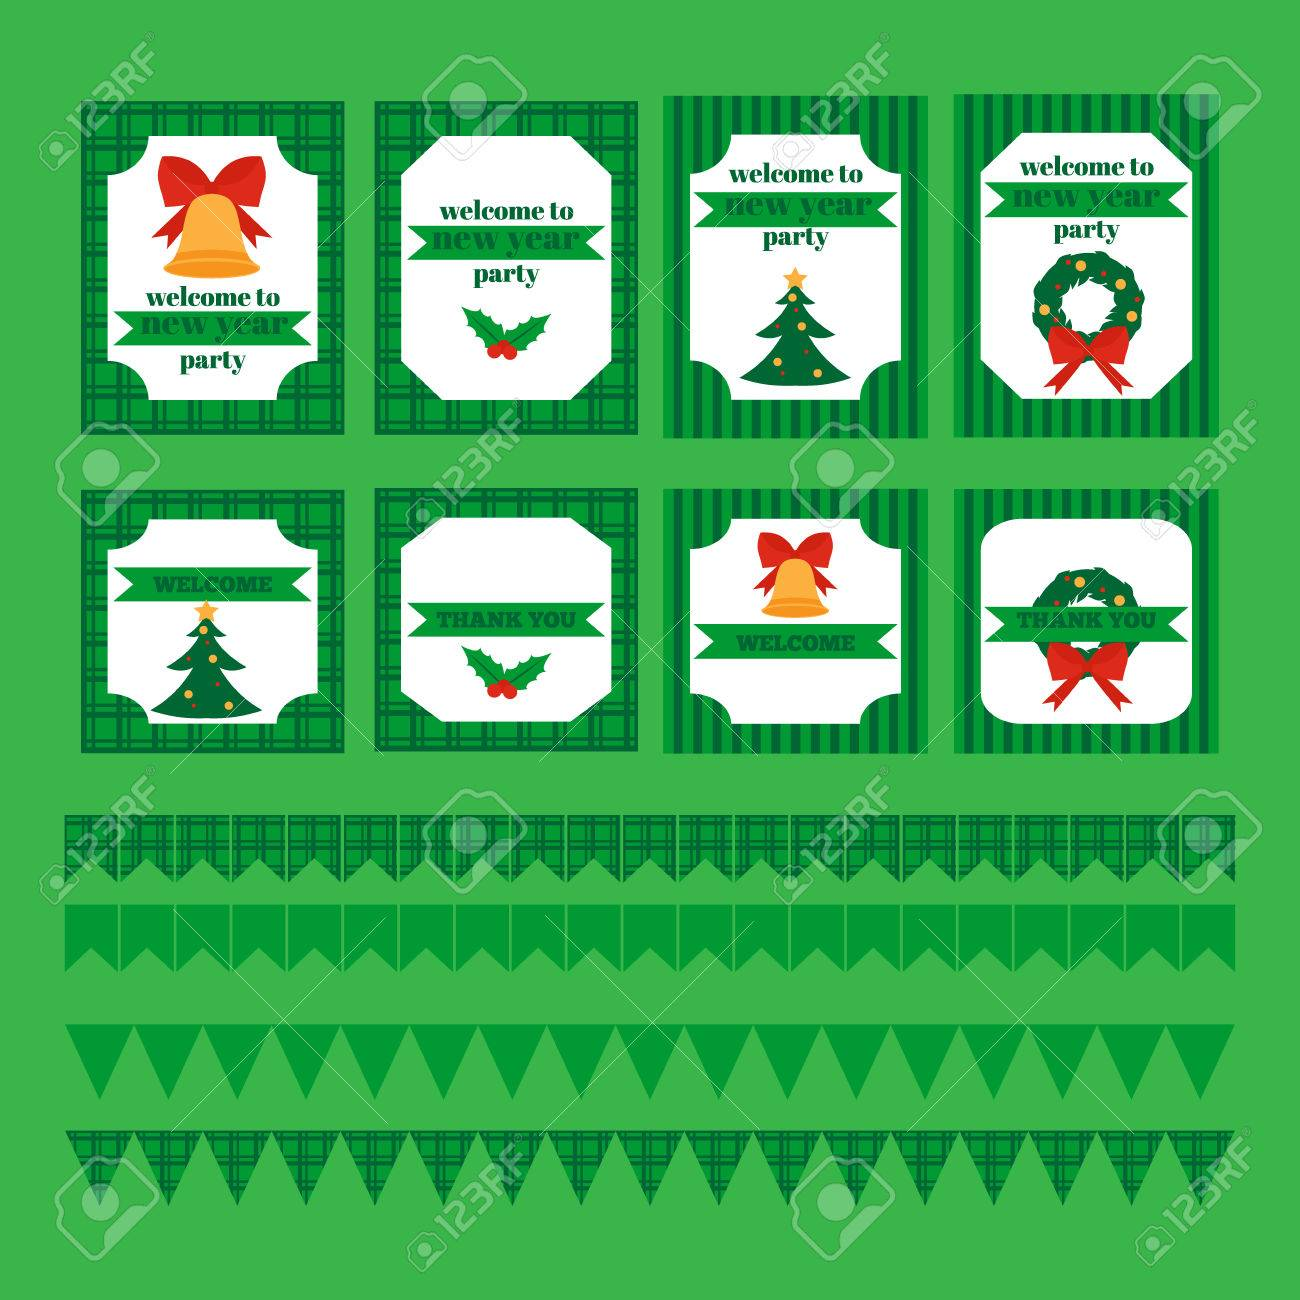 Christmas Gift Wrapper Design Printable.Printable Set Of Christmas And New Year Party Elements Templates